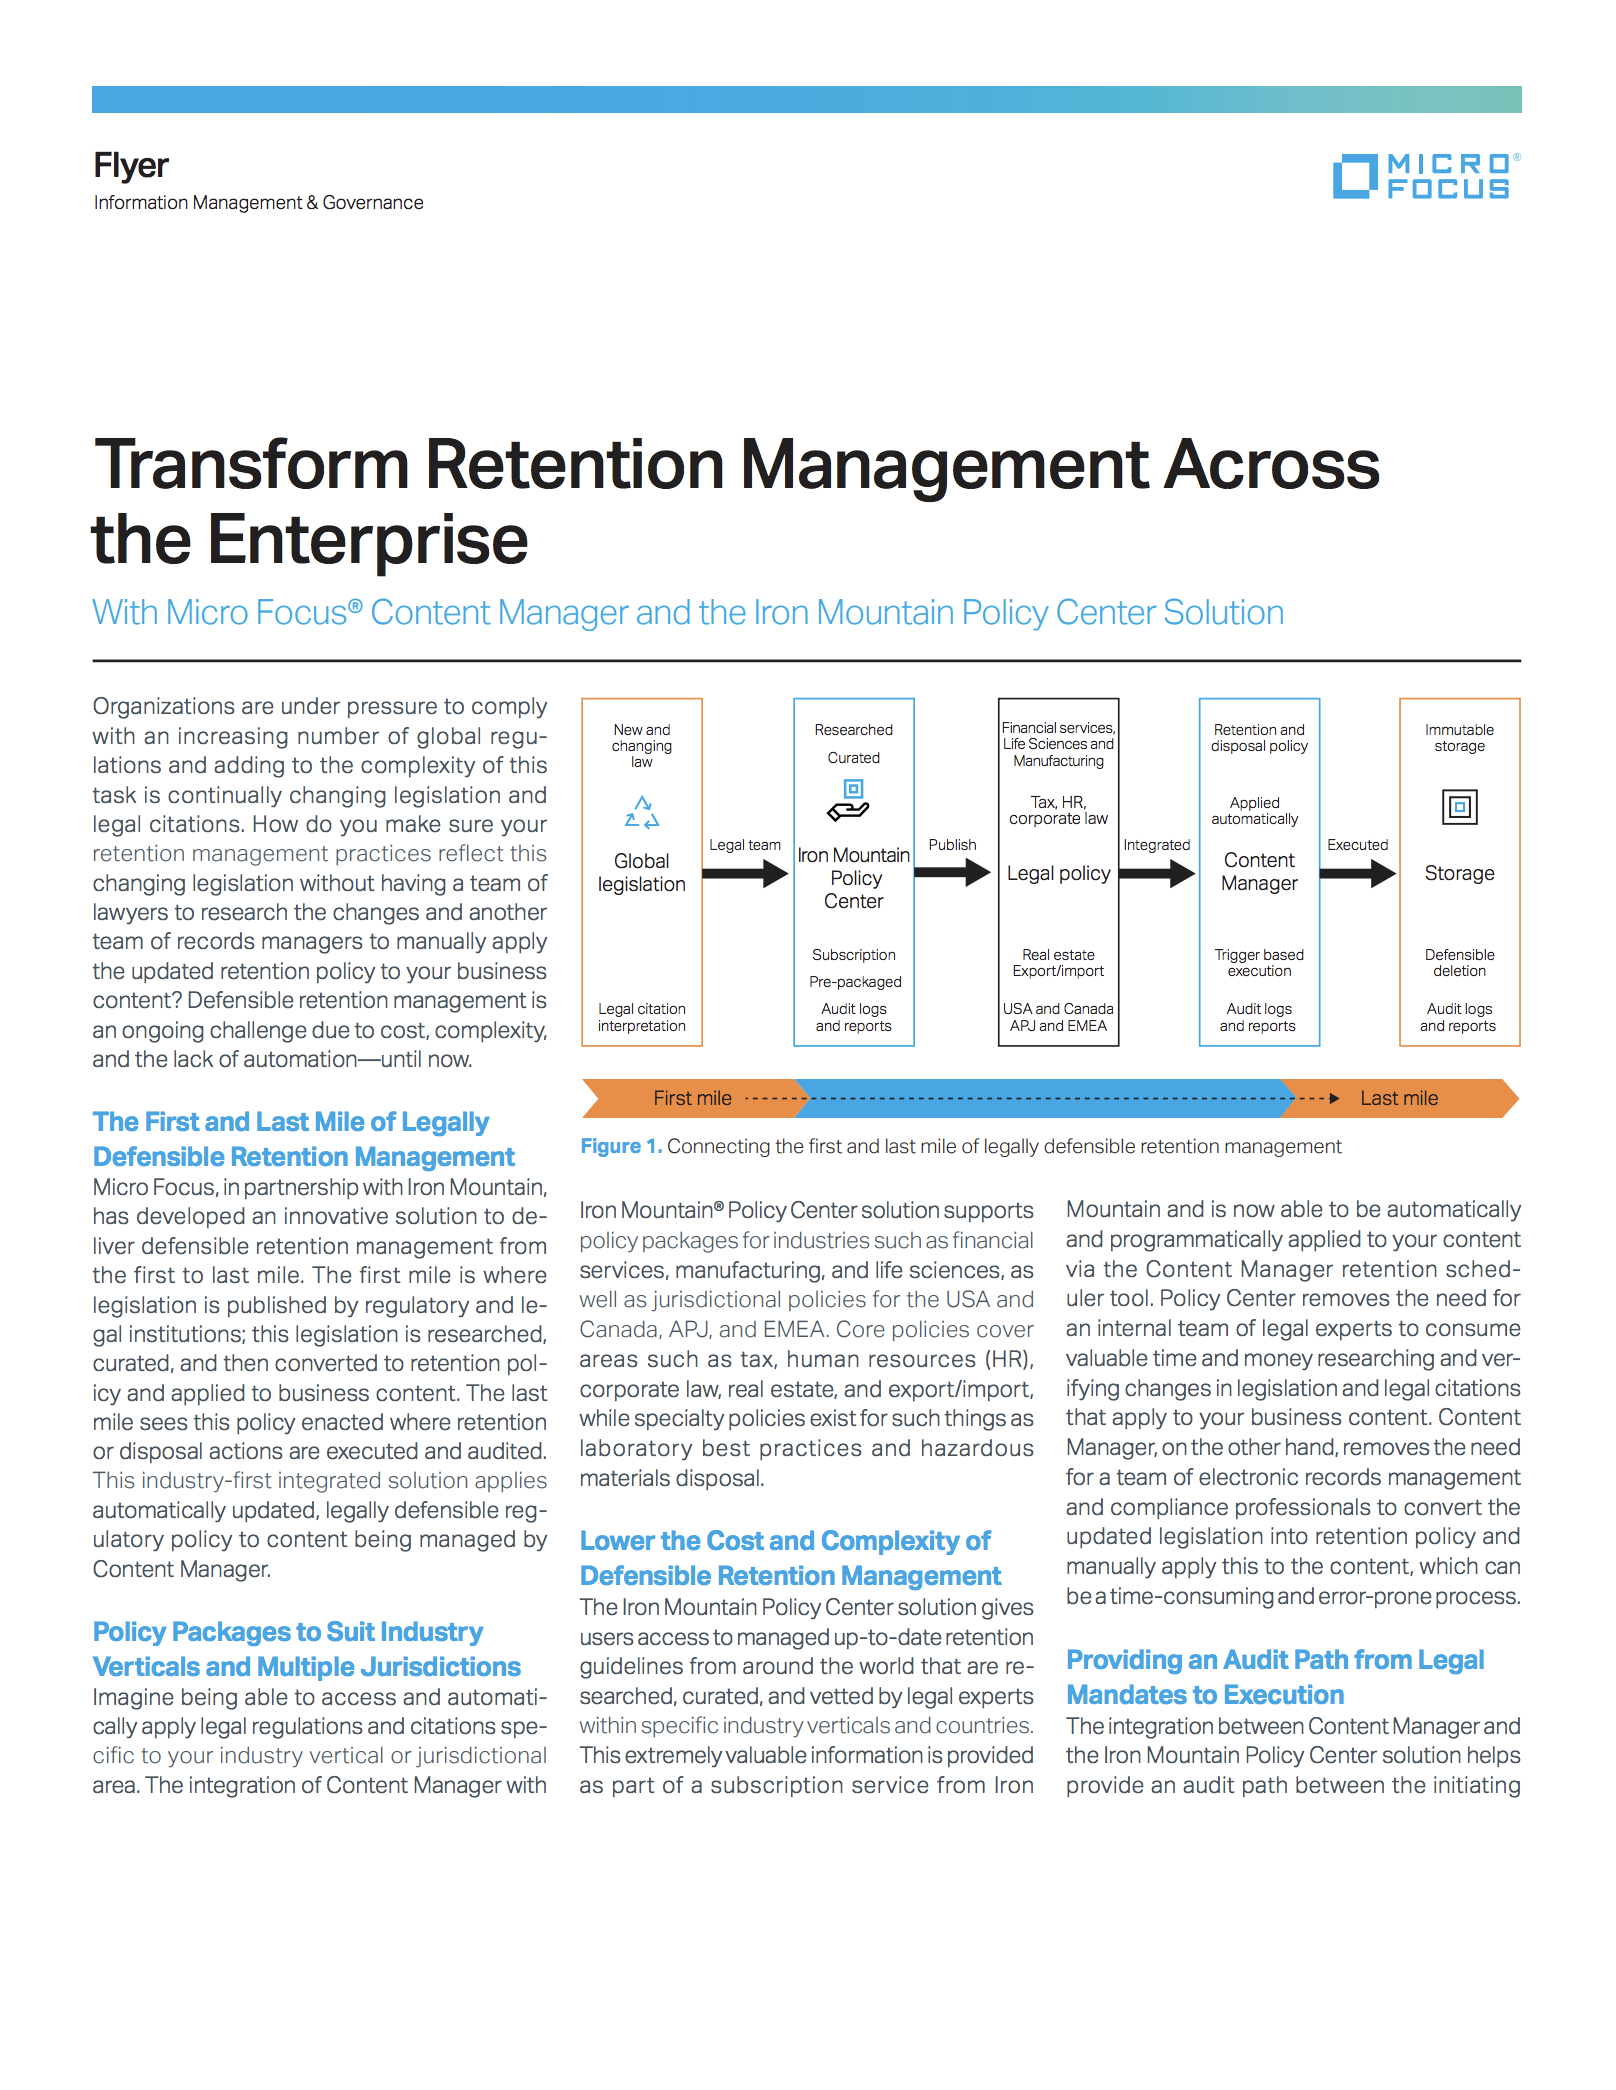 Transform Retention Management Across the Enterprise